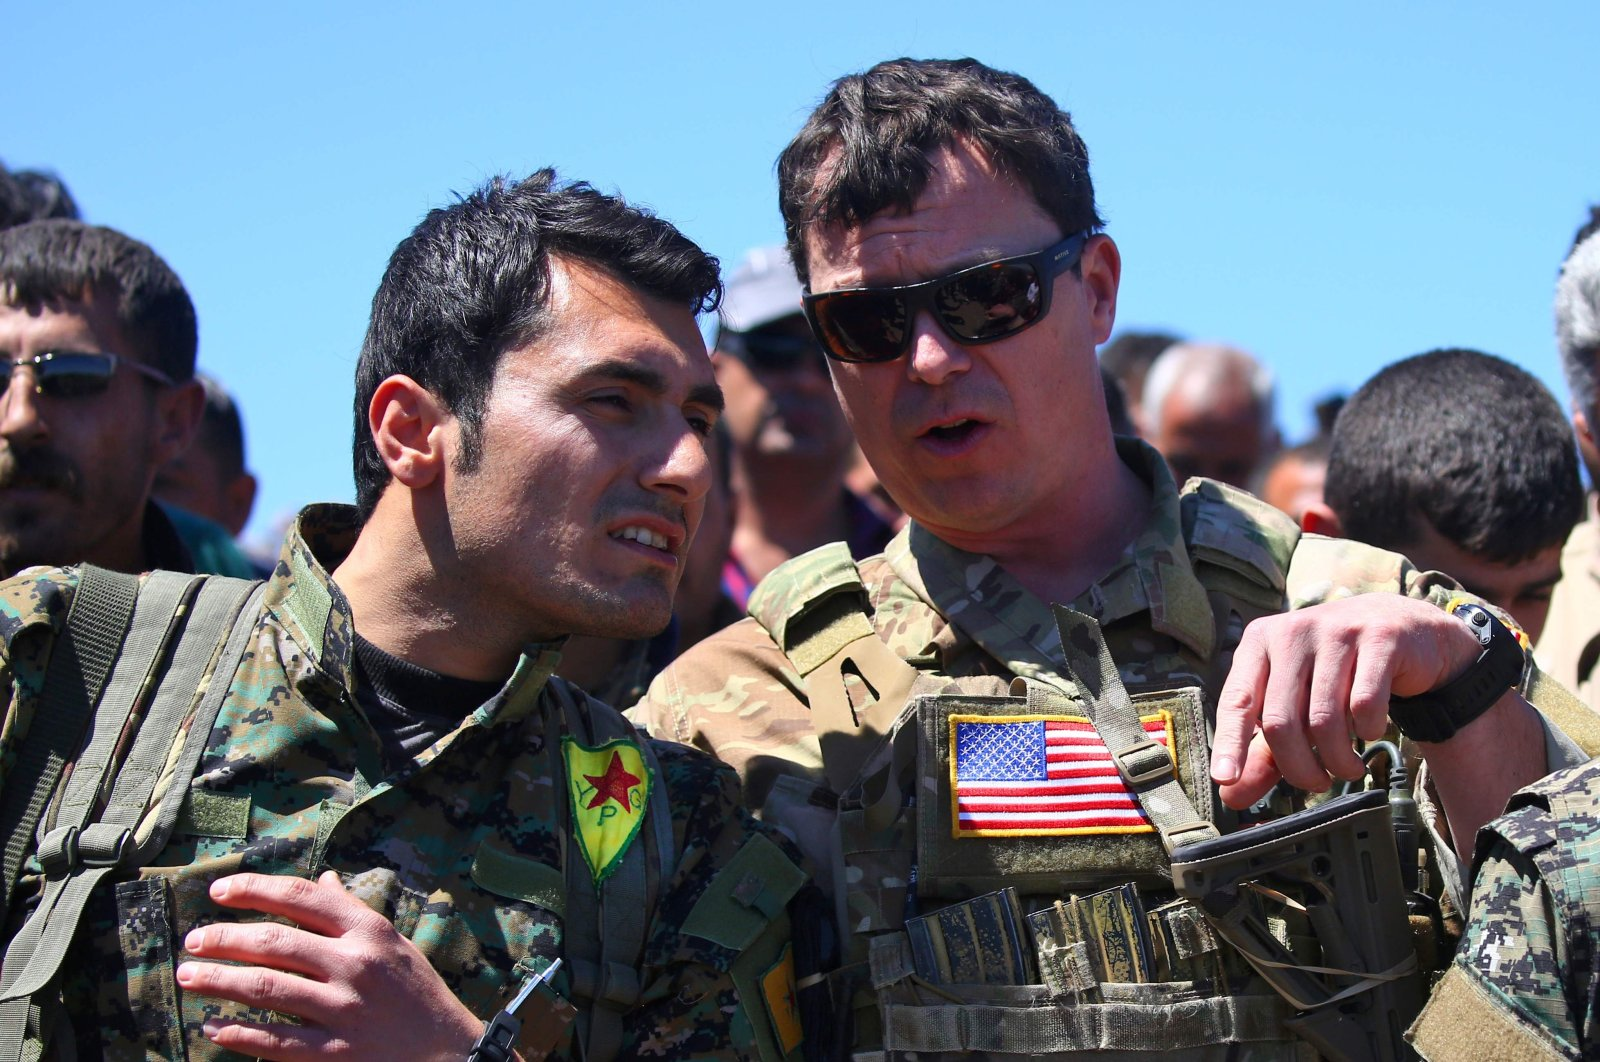 In this file photo, a U.S. military officer speaks with a YPG terrorist at the site of Turkish airstrikes near the town al-Malikiyah, northeastern Syria, April 25, 2017. (AFP Photo)